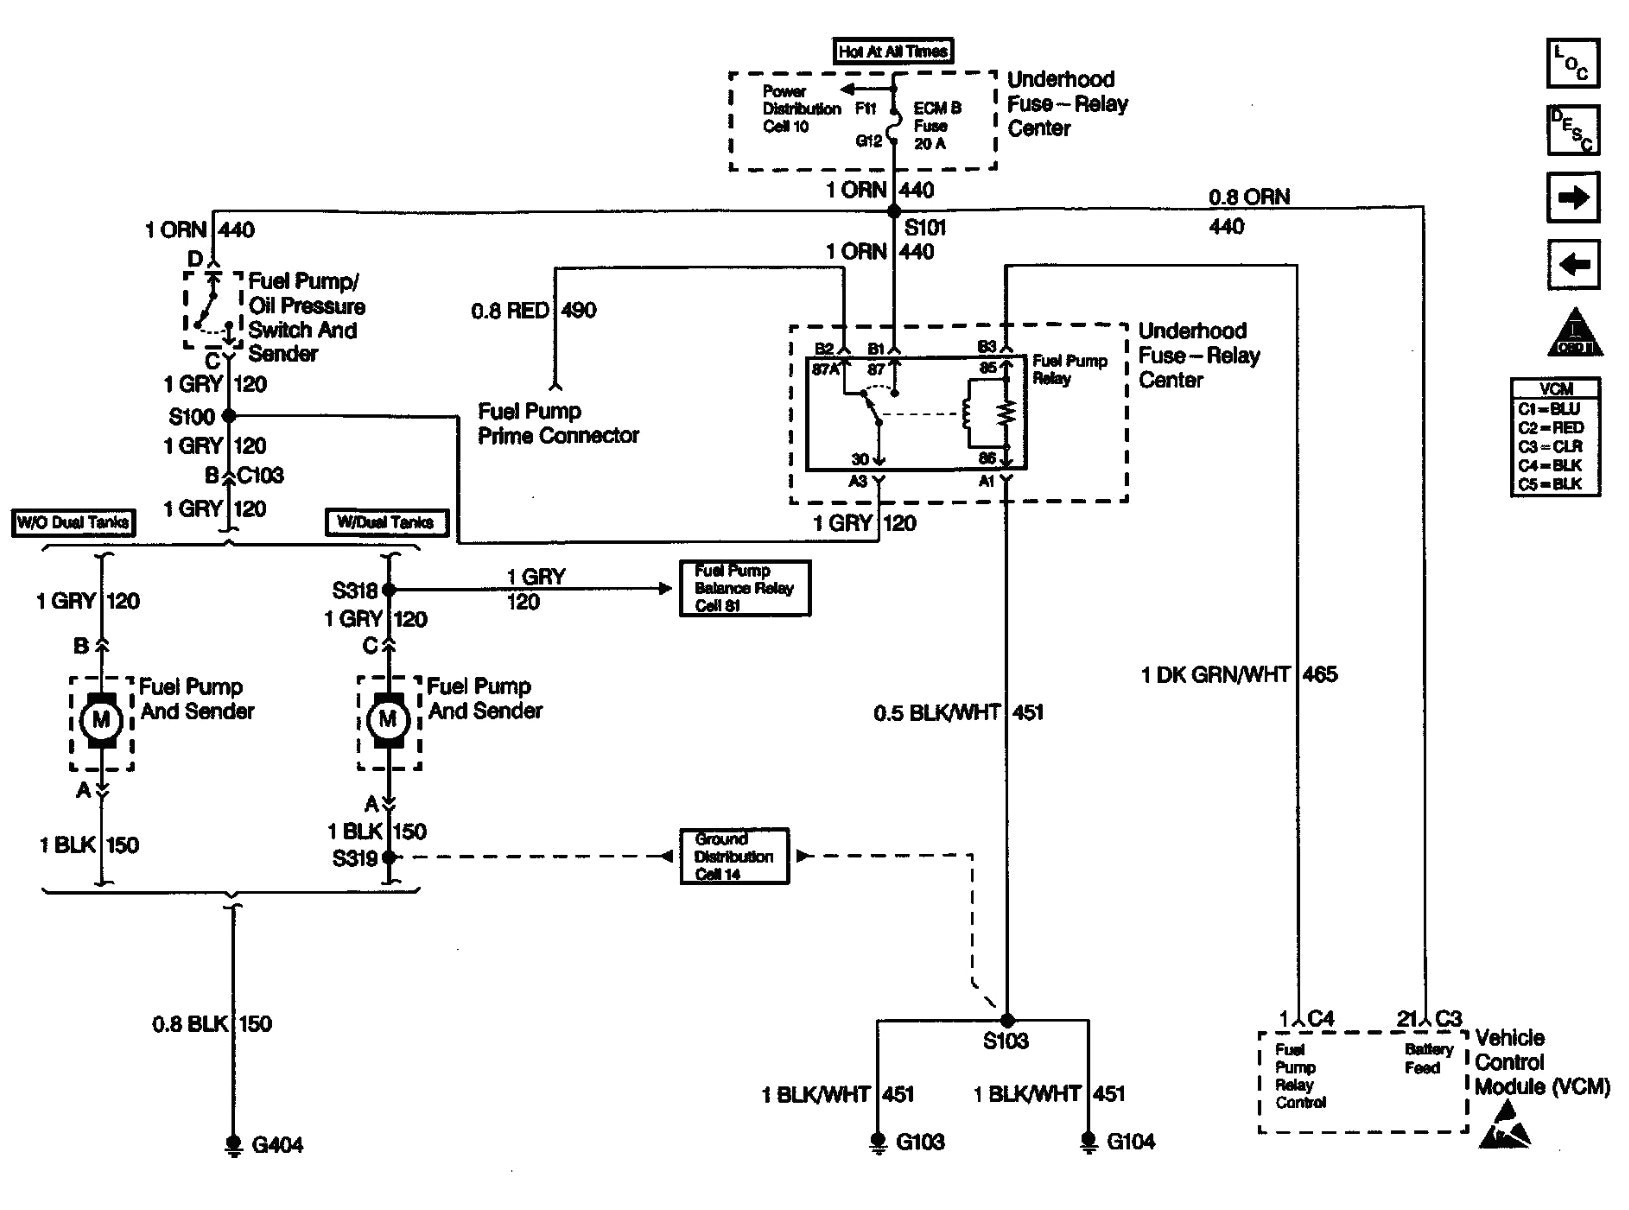 1998 Chevy Silverado Wiring Harness Electrical Diagrams 2001 Navigator Fuel Pump Wire Diagram Image